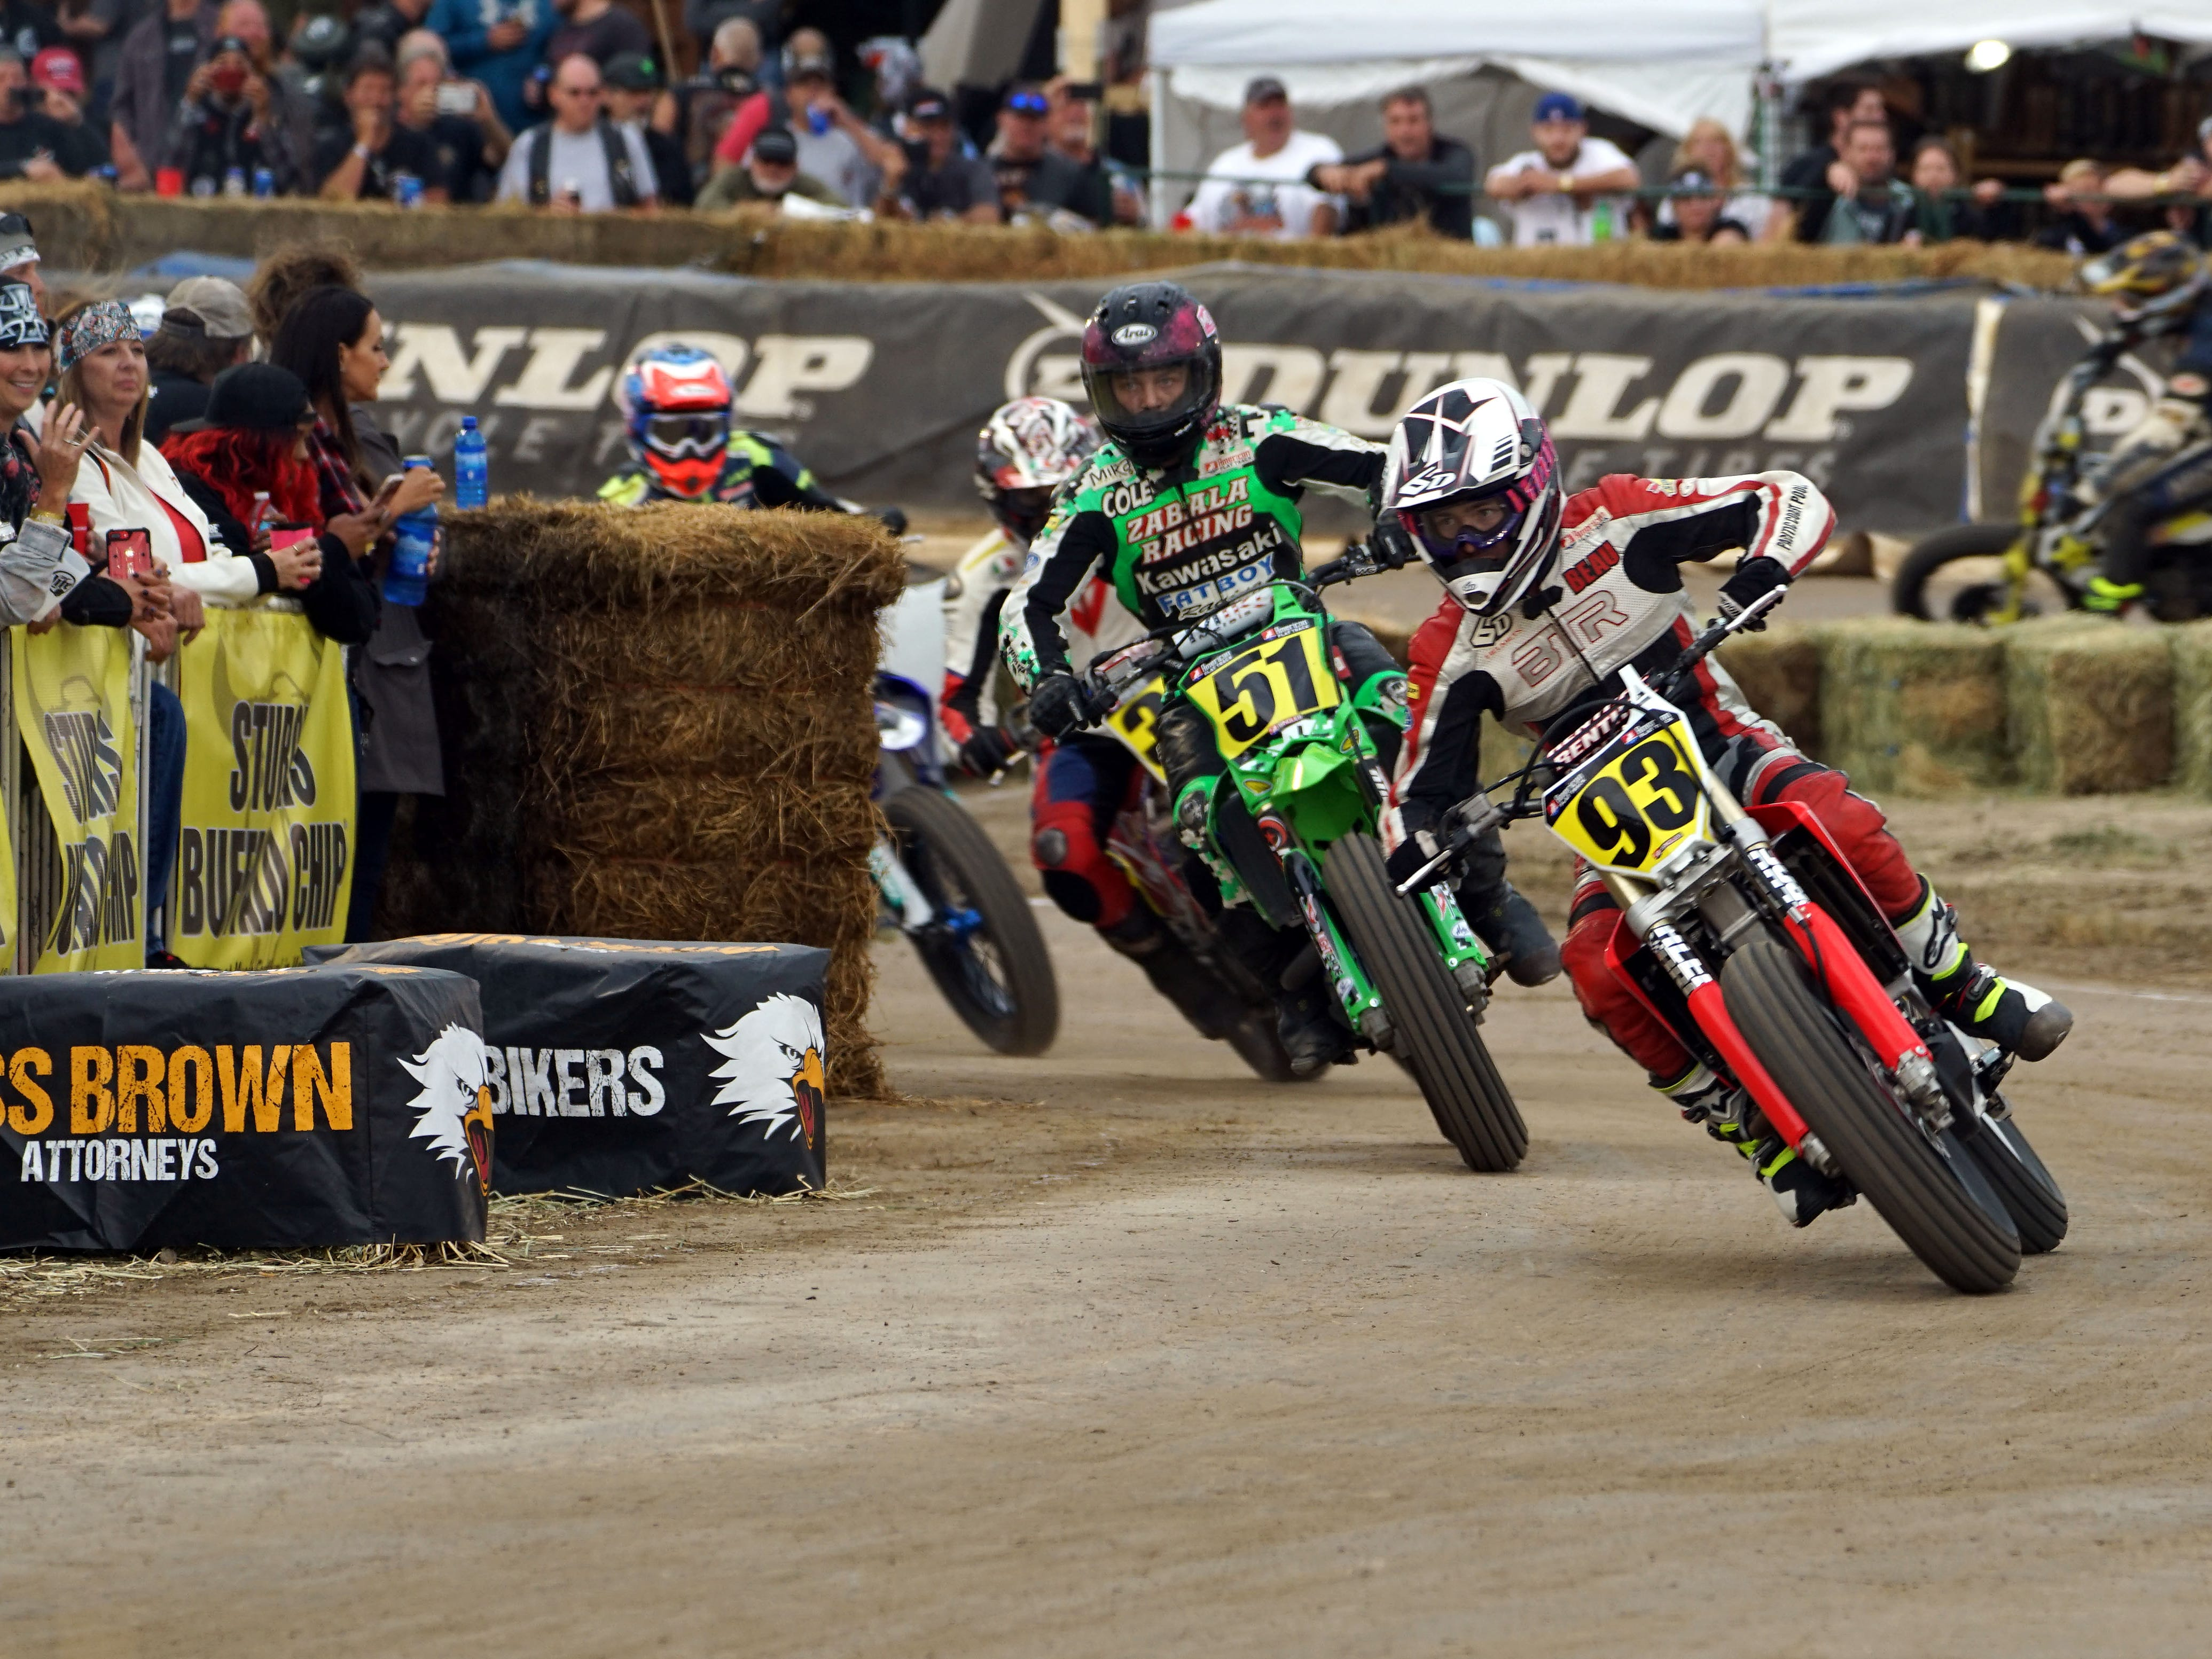 2018: An American Flat Track racer competes during the 2018 Sturgis rally.